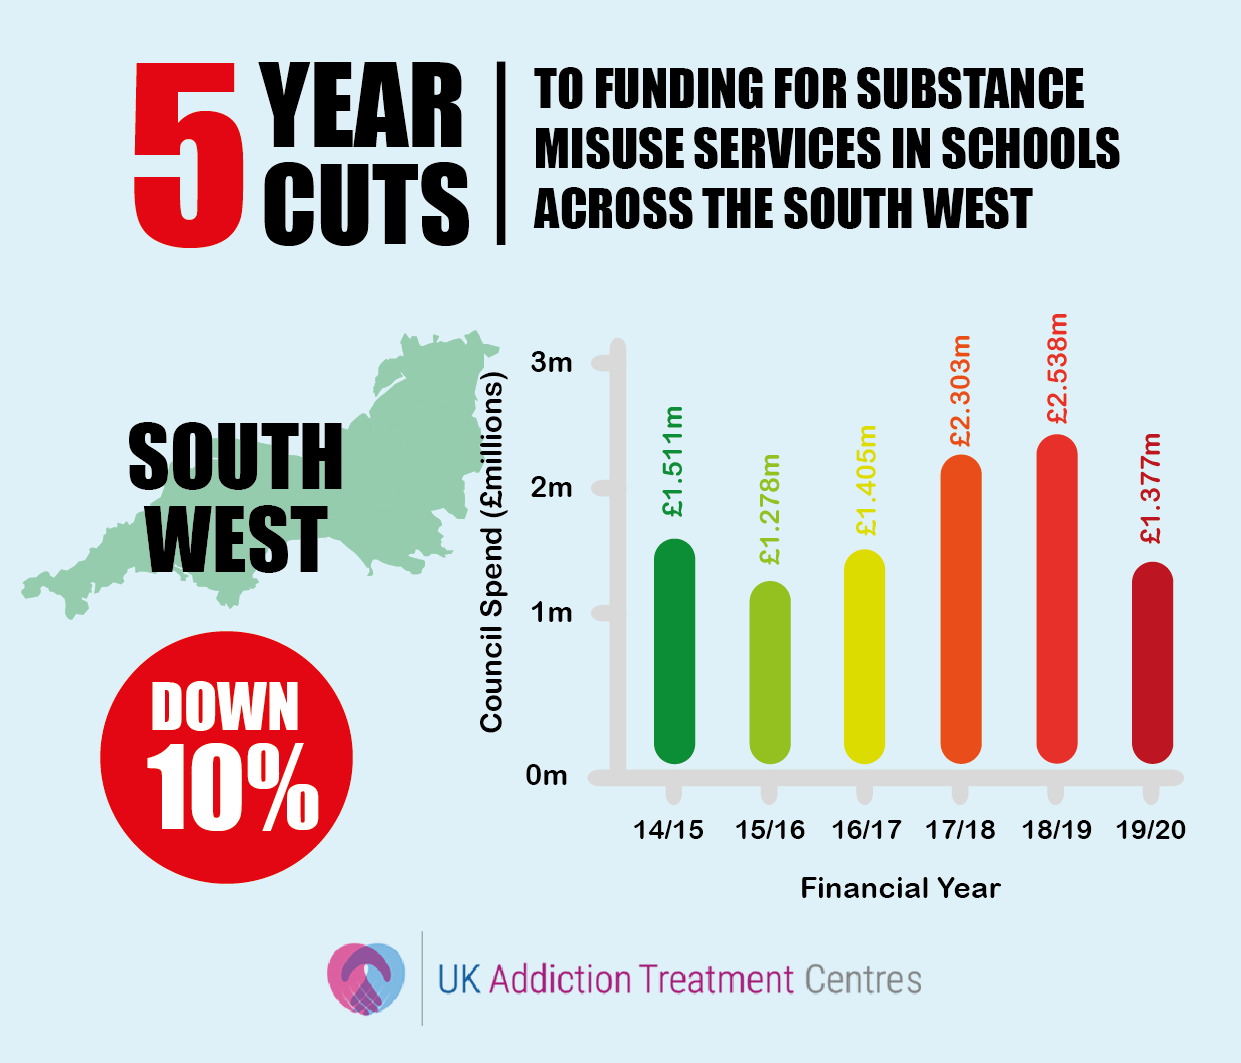 south west england addiction cuts infographic